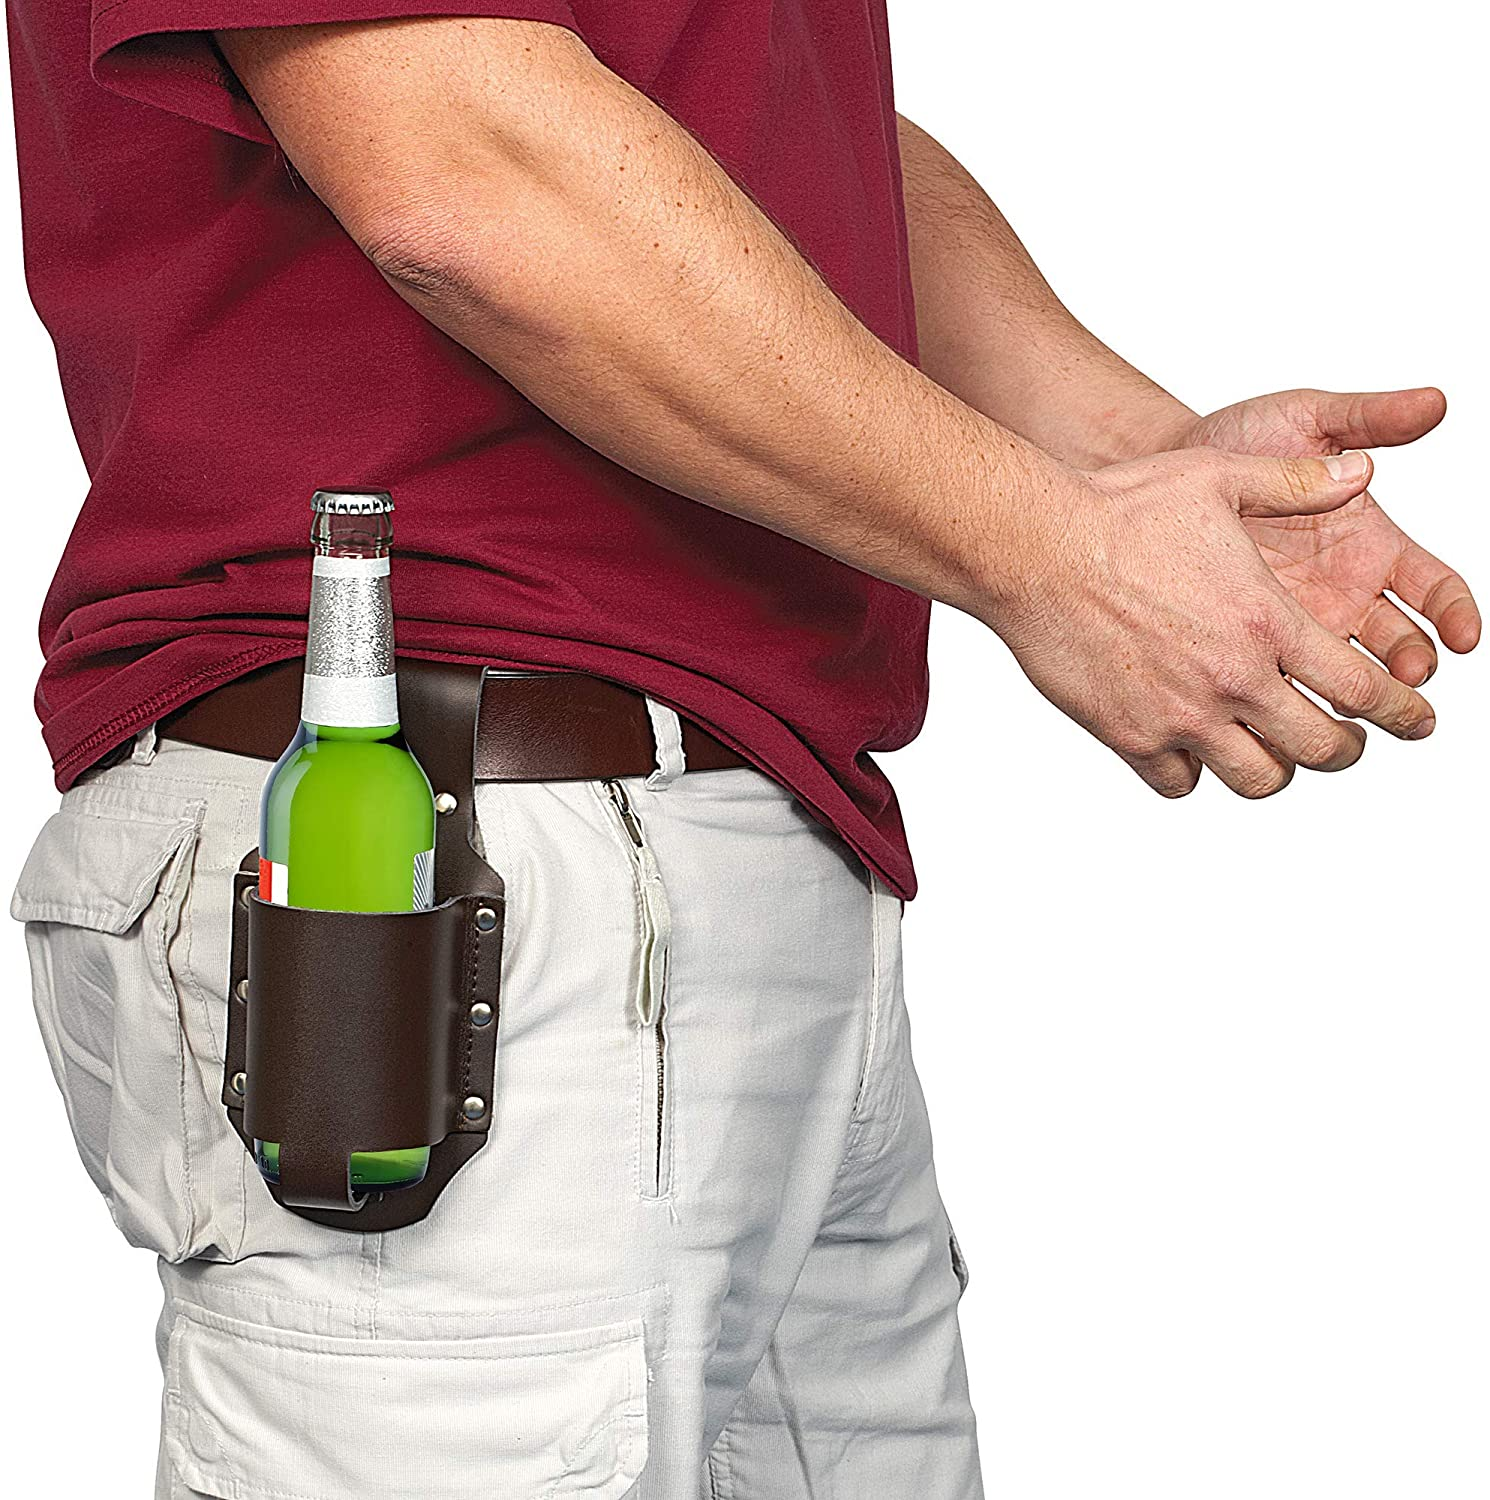 4. Leather Beer Holster